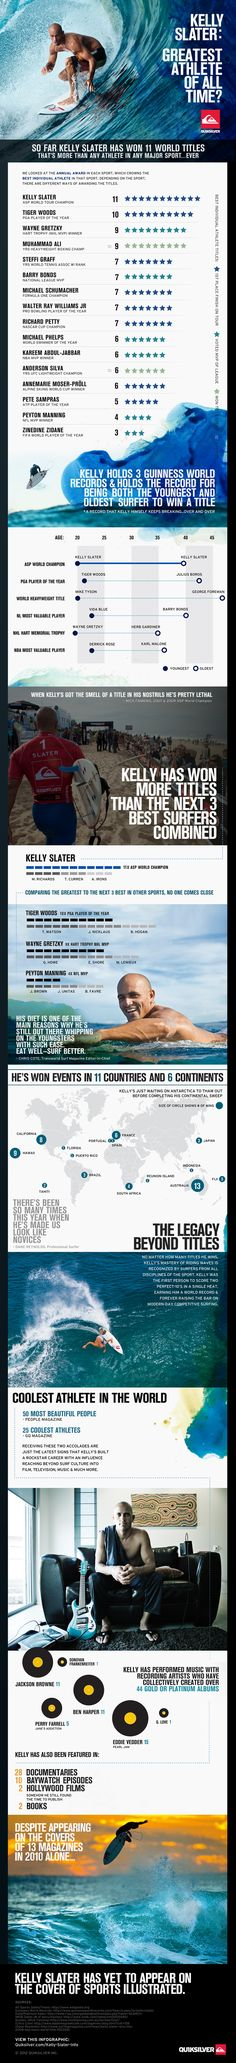 Kelly Slater : greatest athlete of all time?